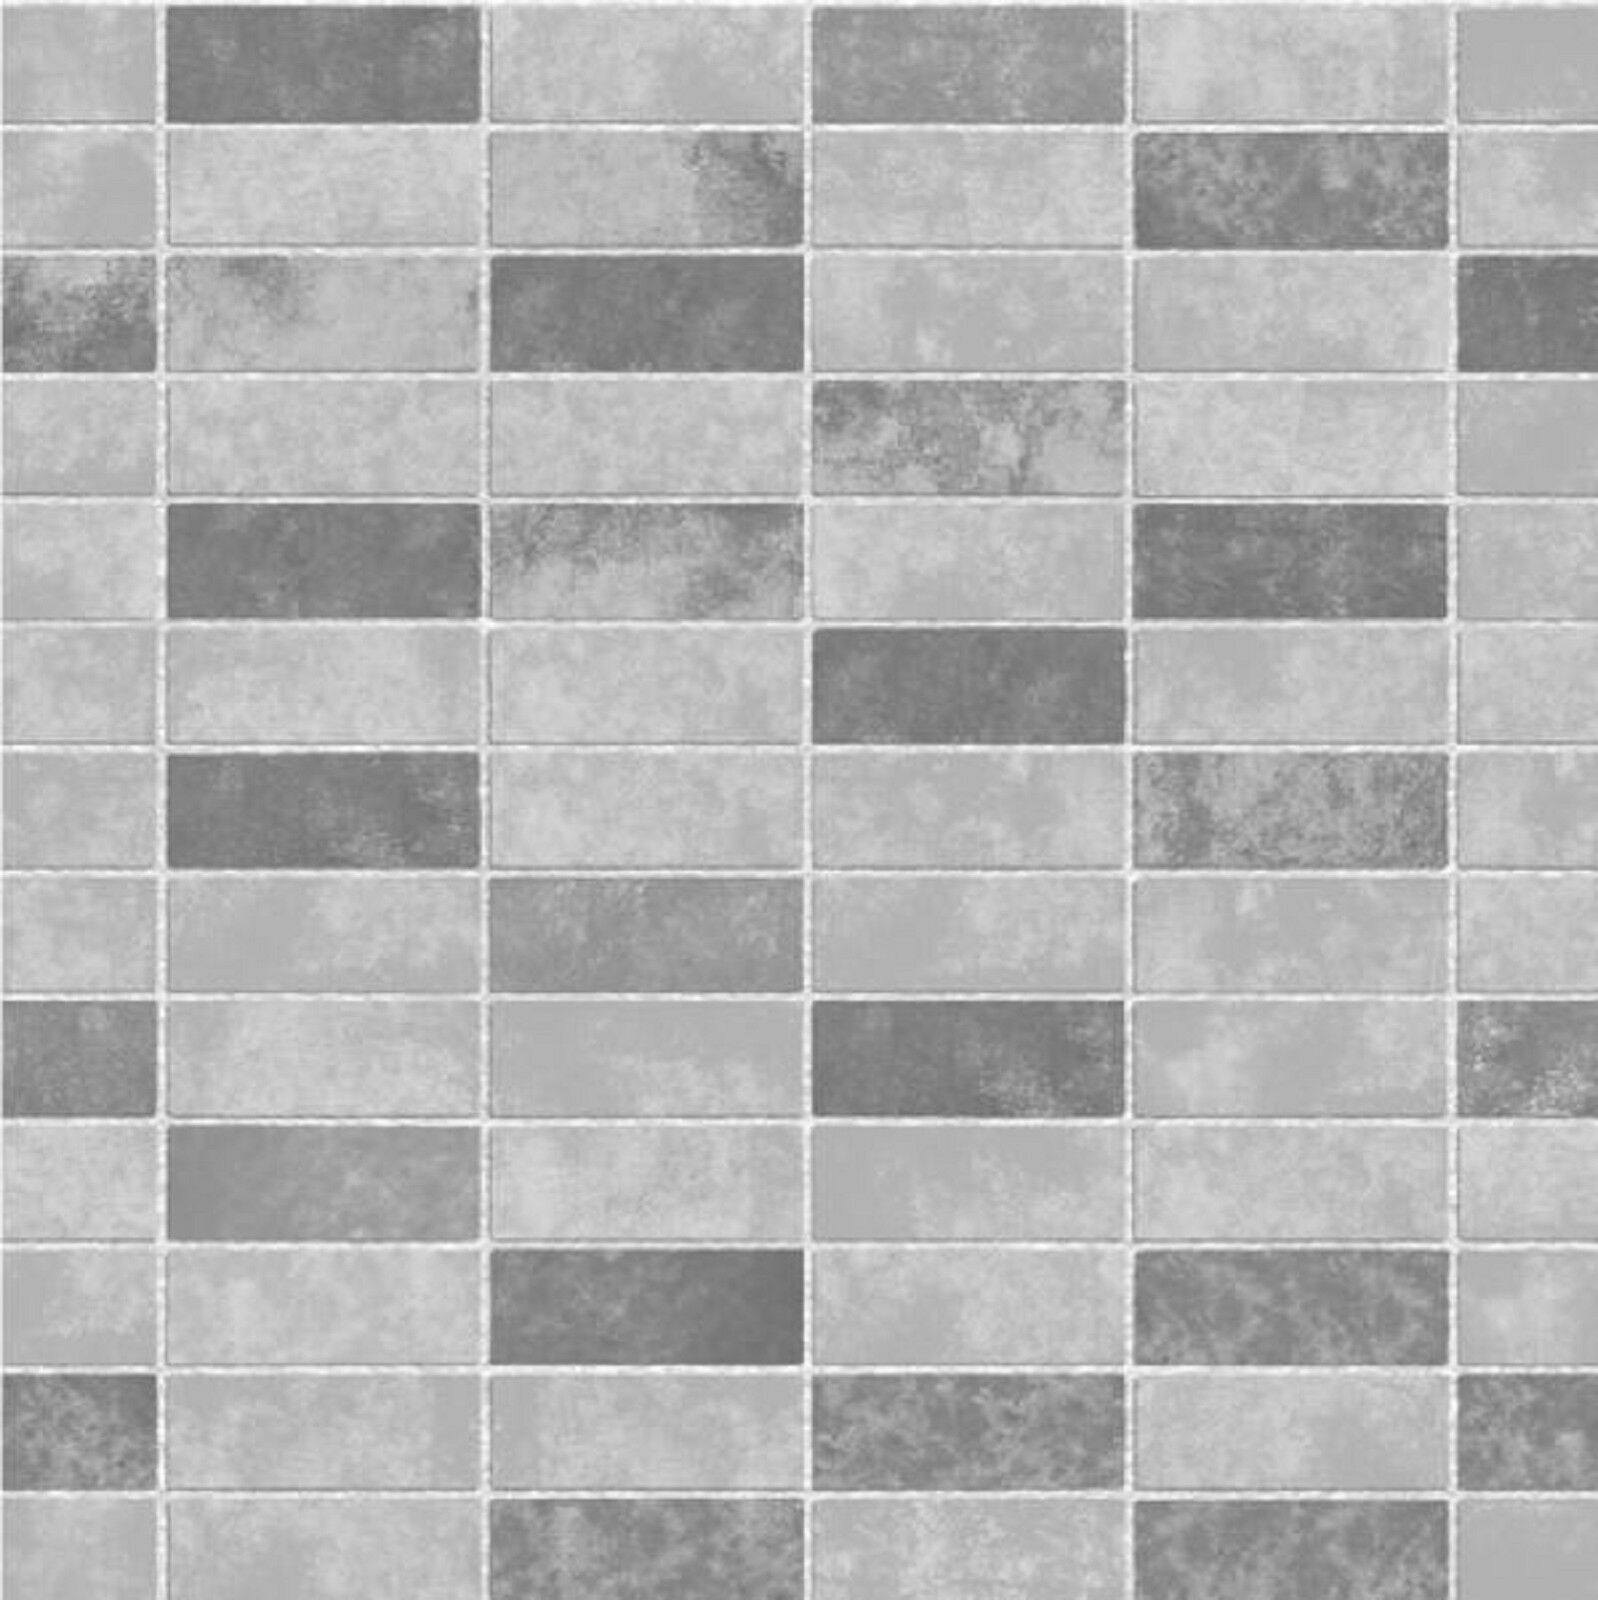 Wallpaper Tiles For Kitchen: Fine Decor FD40117 Ceramica Grey Slate Tile Brick Effect